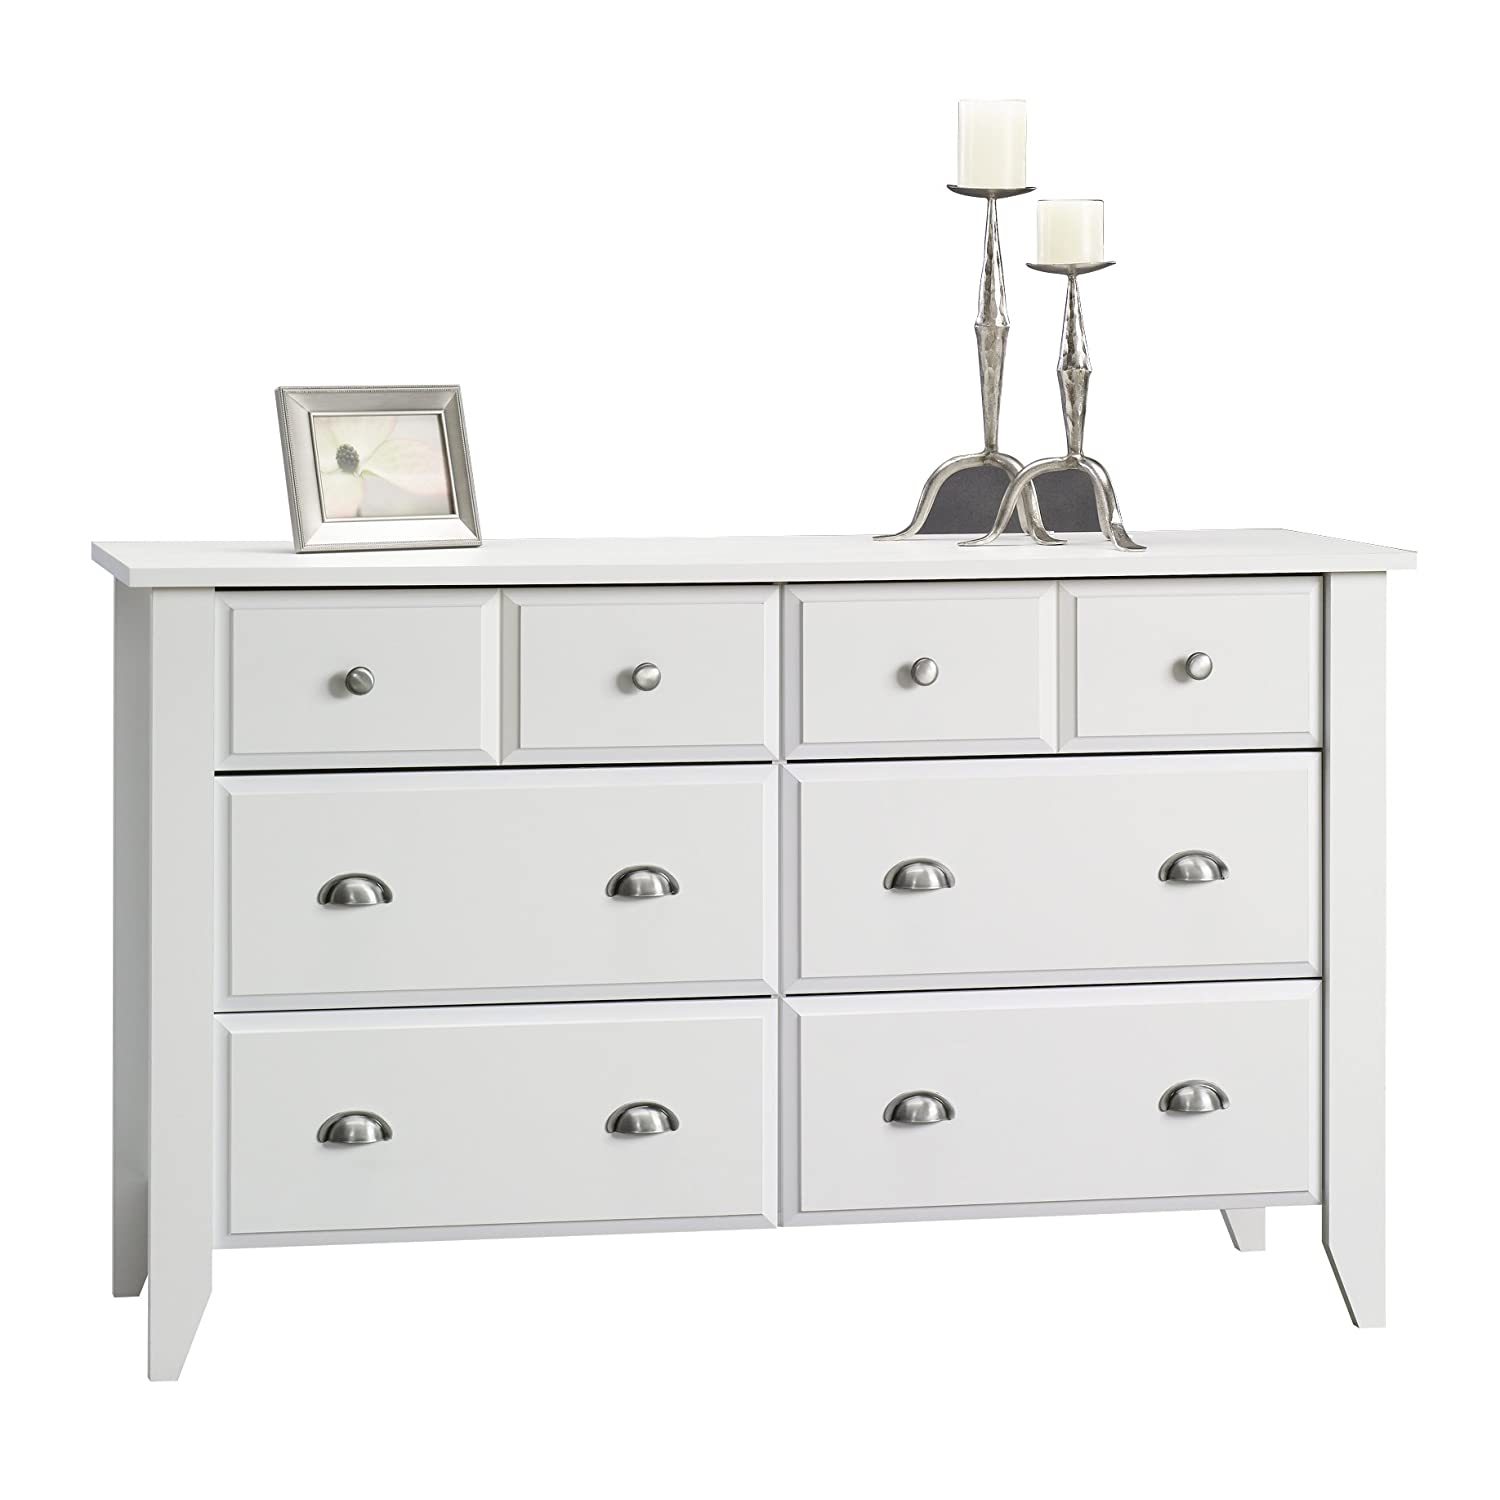 white bedroom dressers. Amazon com  Sauder Shoal Creek Dresser Soft White Finish Kitchen Dining